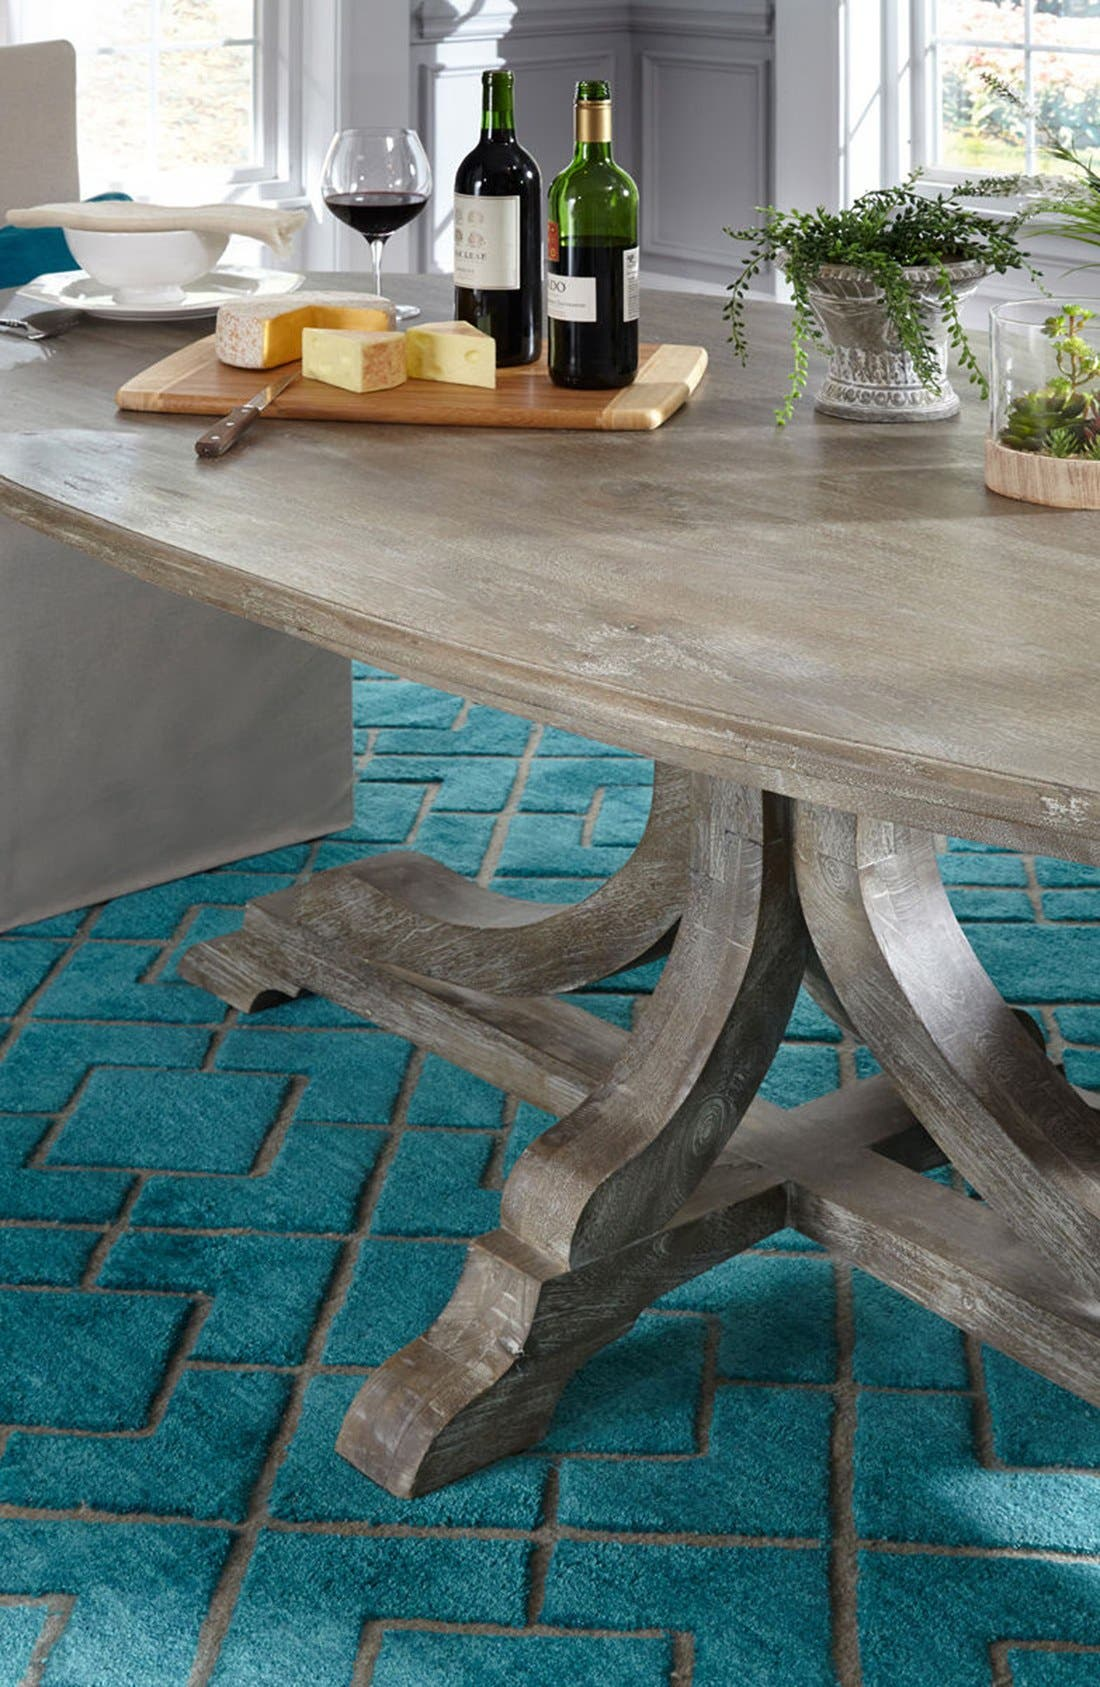 VILLA HOME COLLECTION,                             'Over Tufted - Turquoise' Rug,                             Alternate thumbnail 5, color,                             440